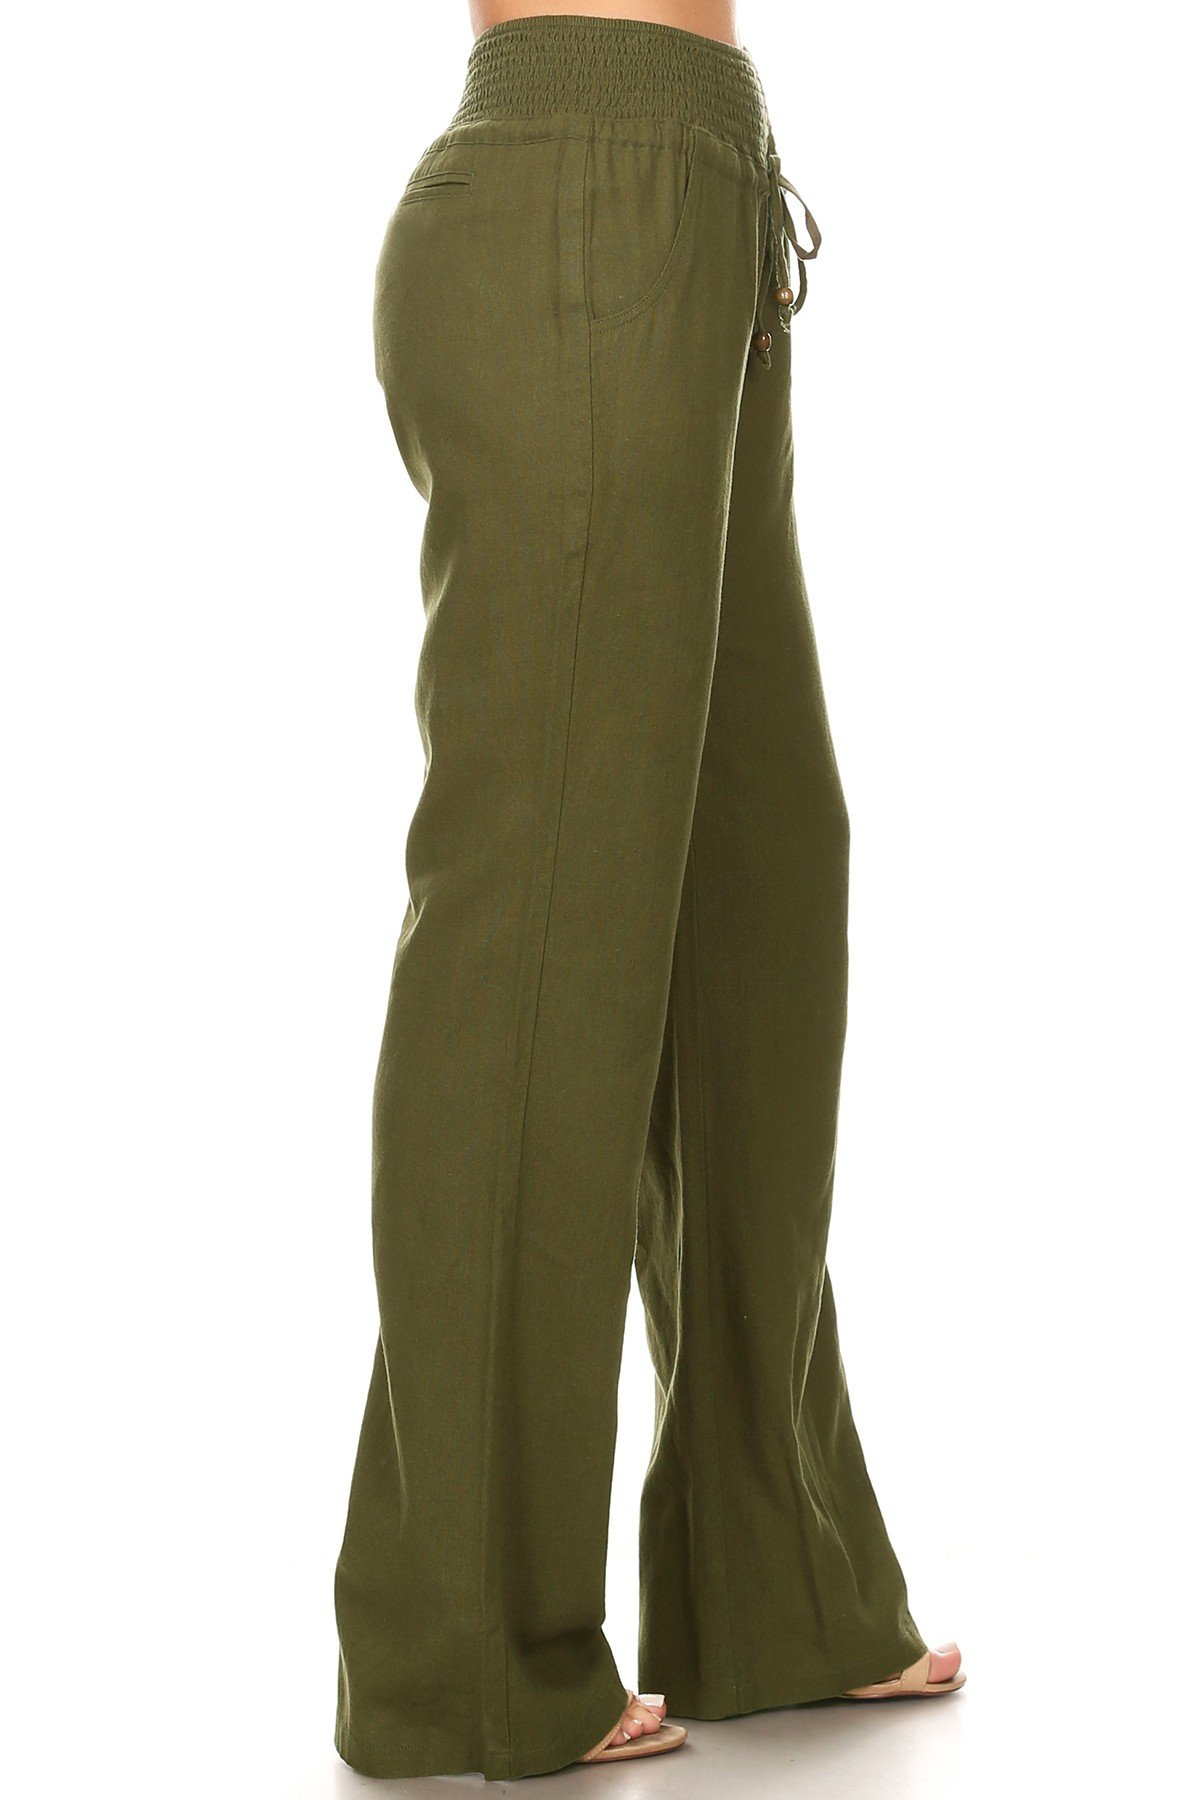 April Apparel Inc. Via Jay Women's Casual Relaxed-Fit Wide Leg High Waist Pants (Large, Olive)